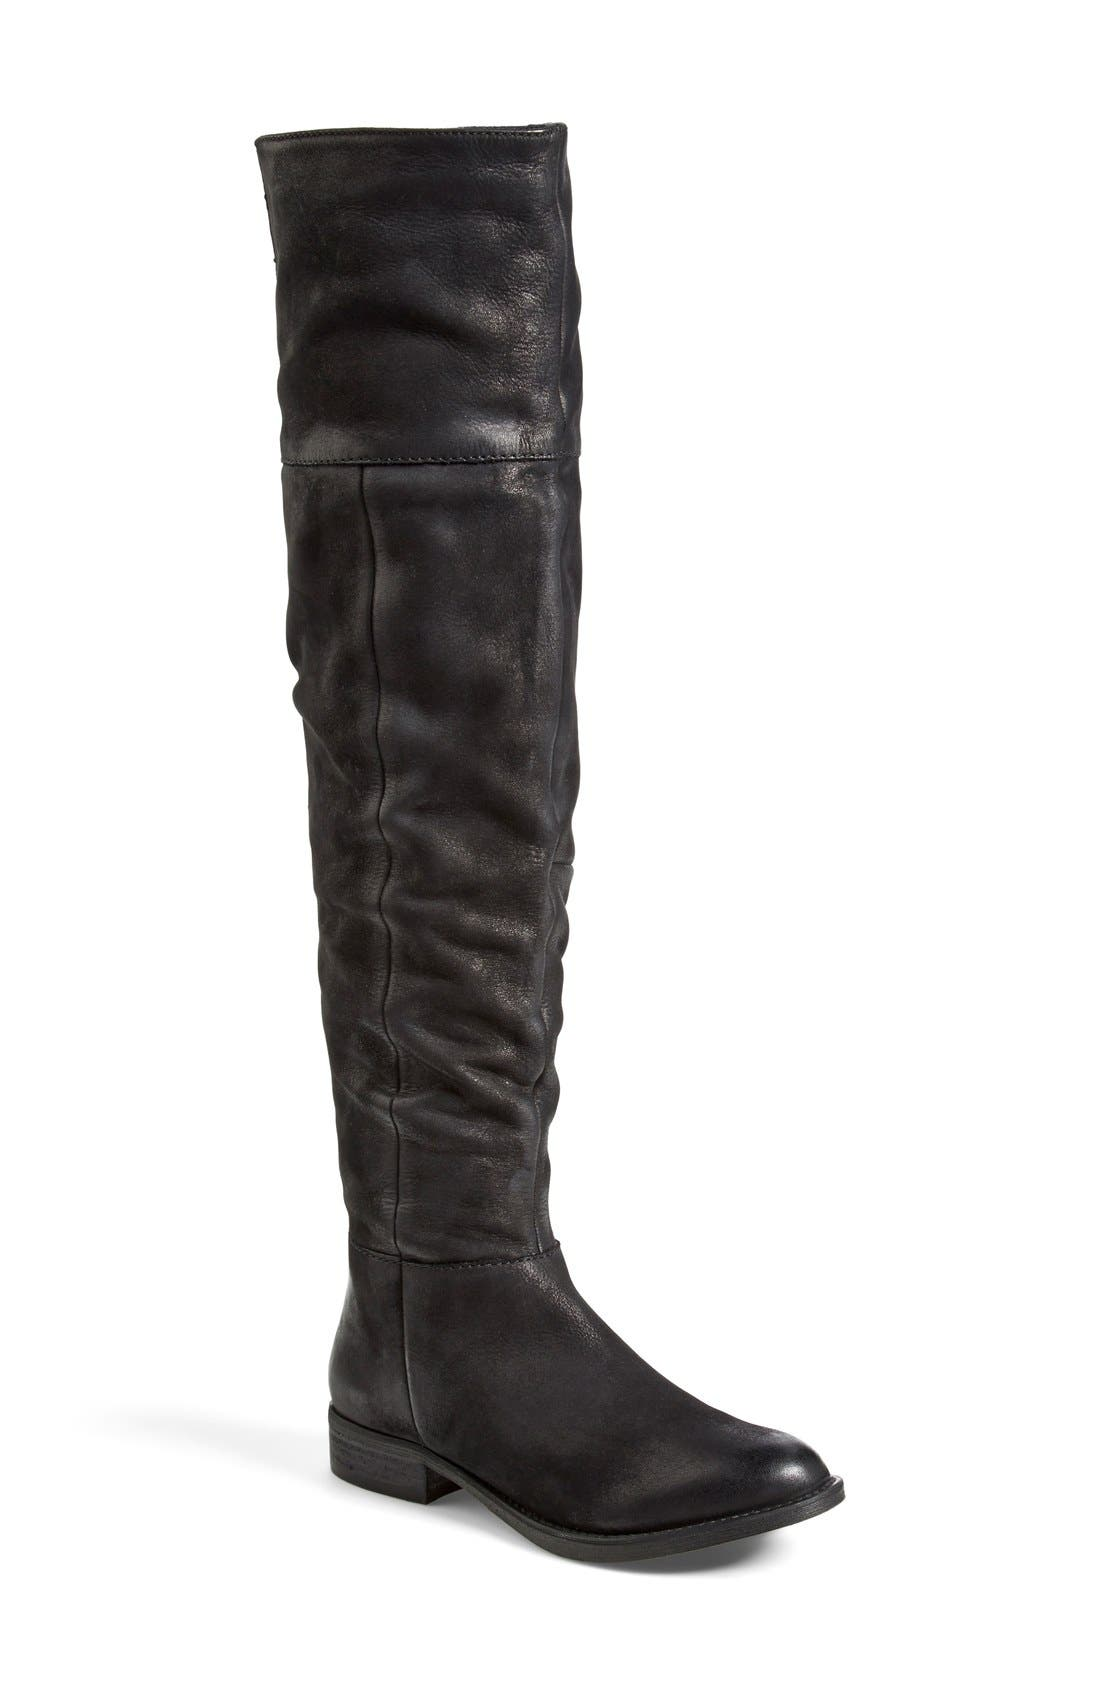 'Heisnbrg' Leather Over the Knee Boot,                             Main thumbnail 1, color,                             001